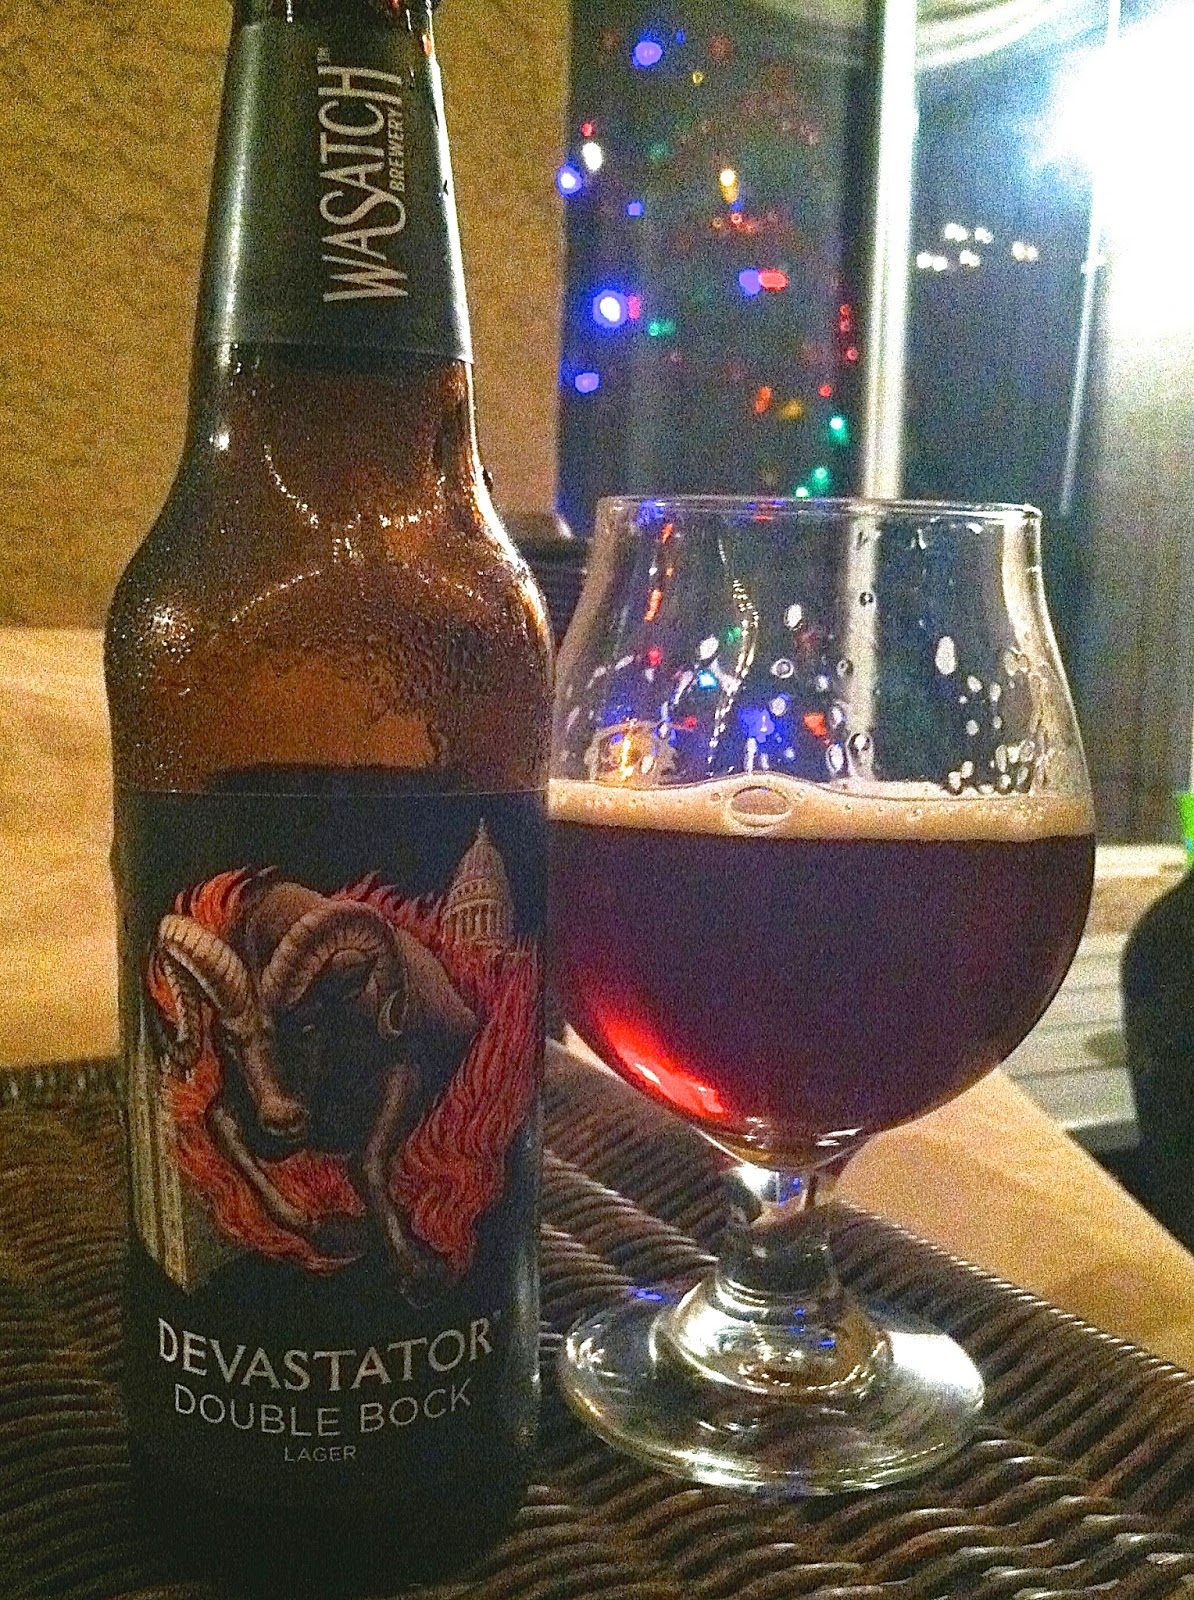 Wasatch Devastator Double Bock 1